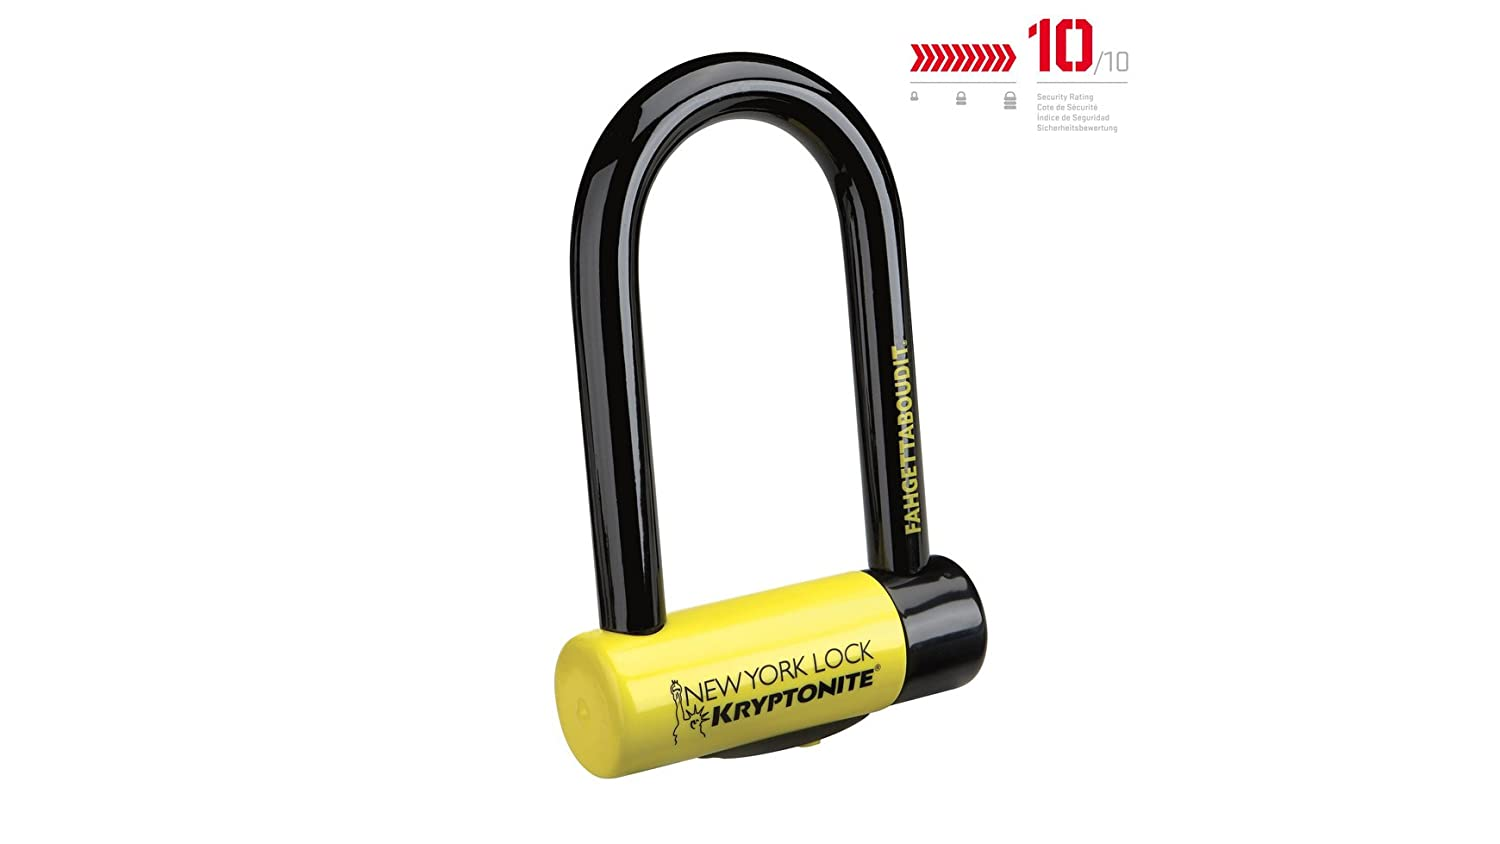 Kryptonite U-Locks, Catena New York Fahgettaboudit Unisex – Adulto, Giallo, Mini Catena New York Fahgettaboudit Unisex - Adulto 002178